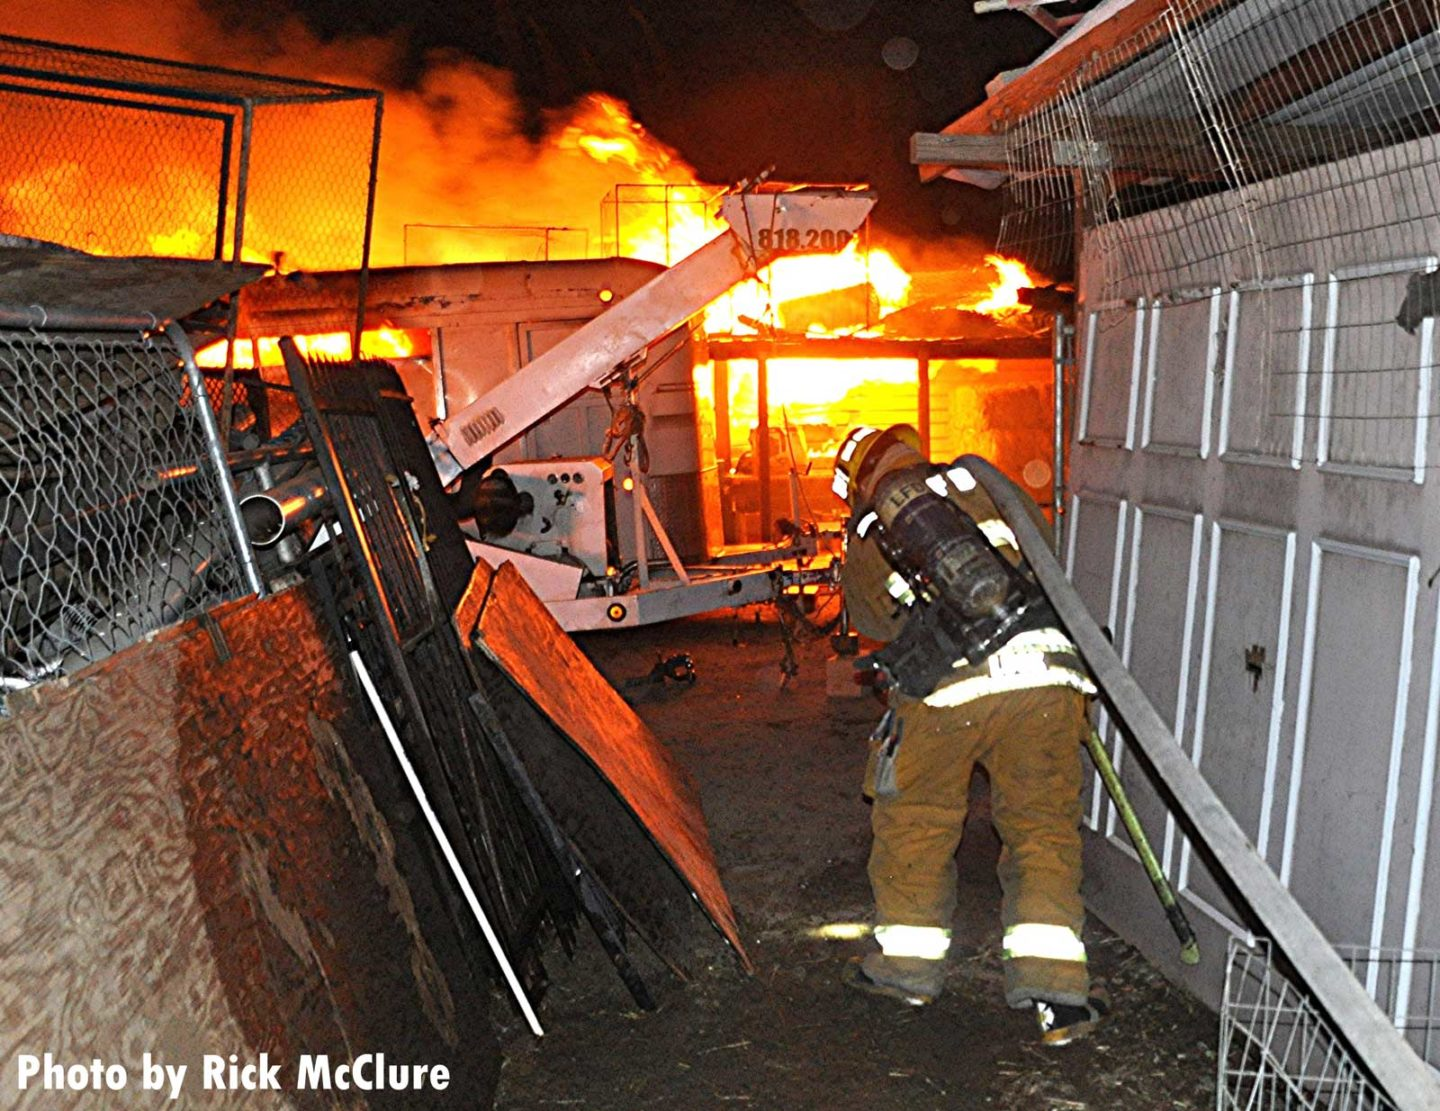 Firefighter hauls a charged hoseline between structures